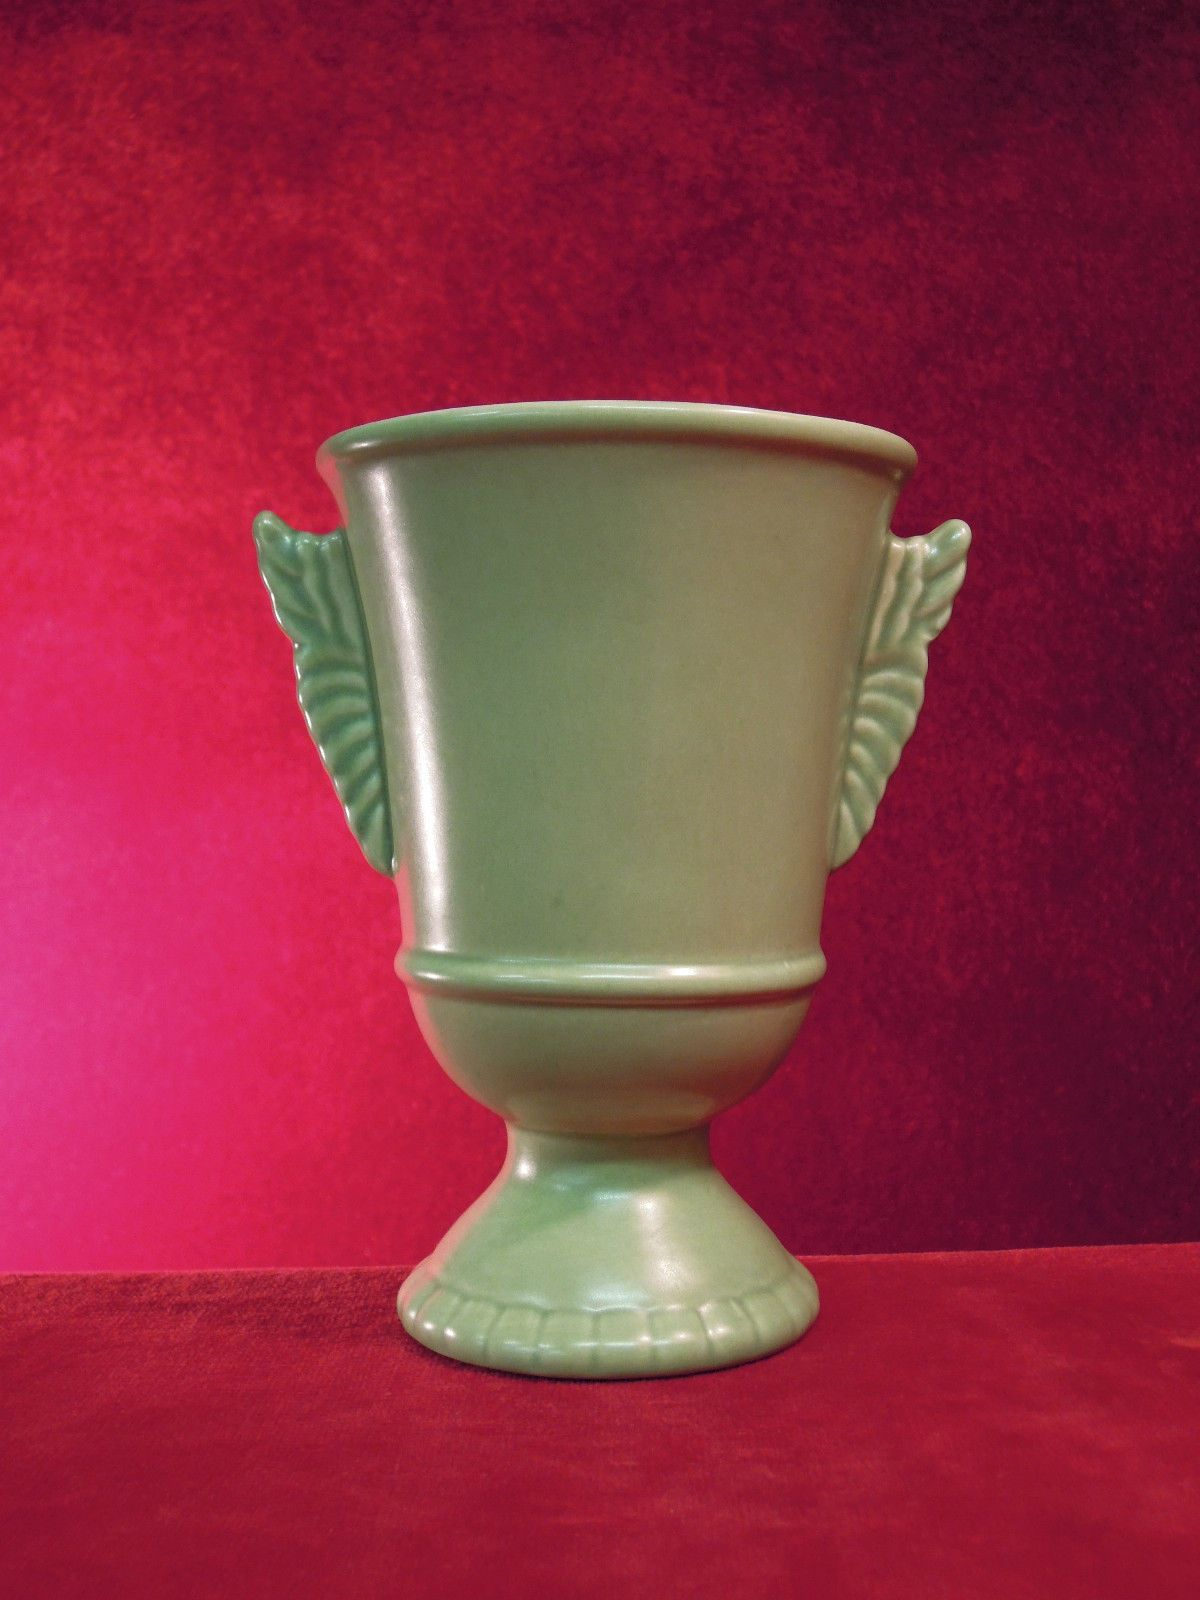 Red wing pottery vase 1090 green art deco style red wing pottery red wing pottery vase 1090 green art deco style reviewsmspy